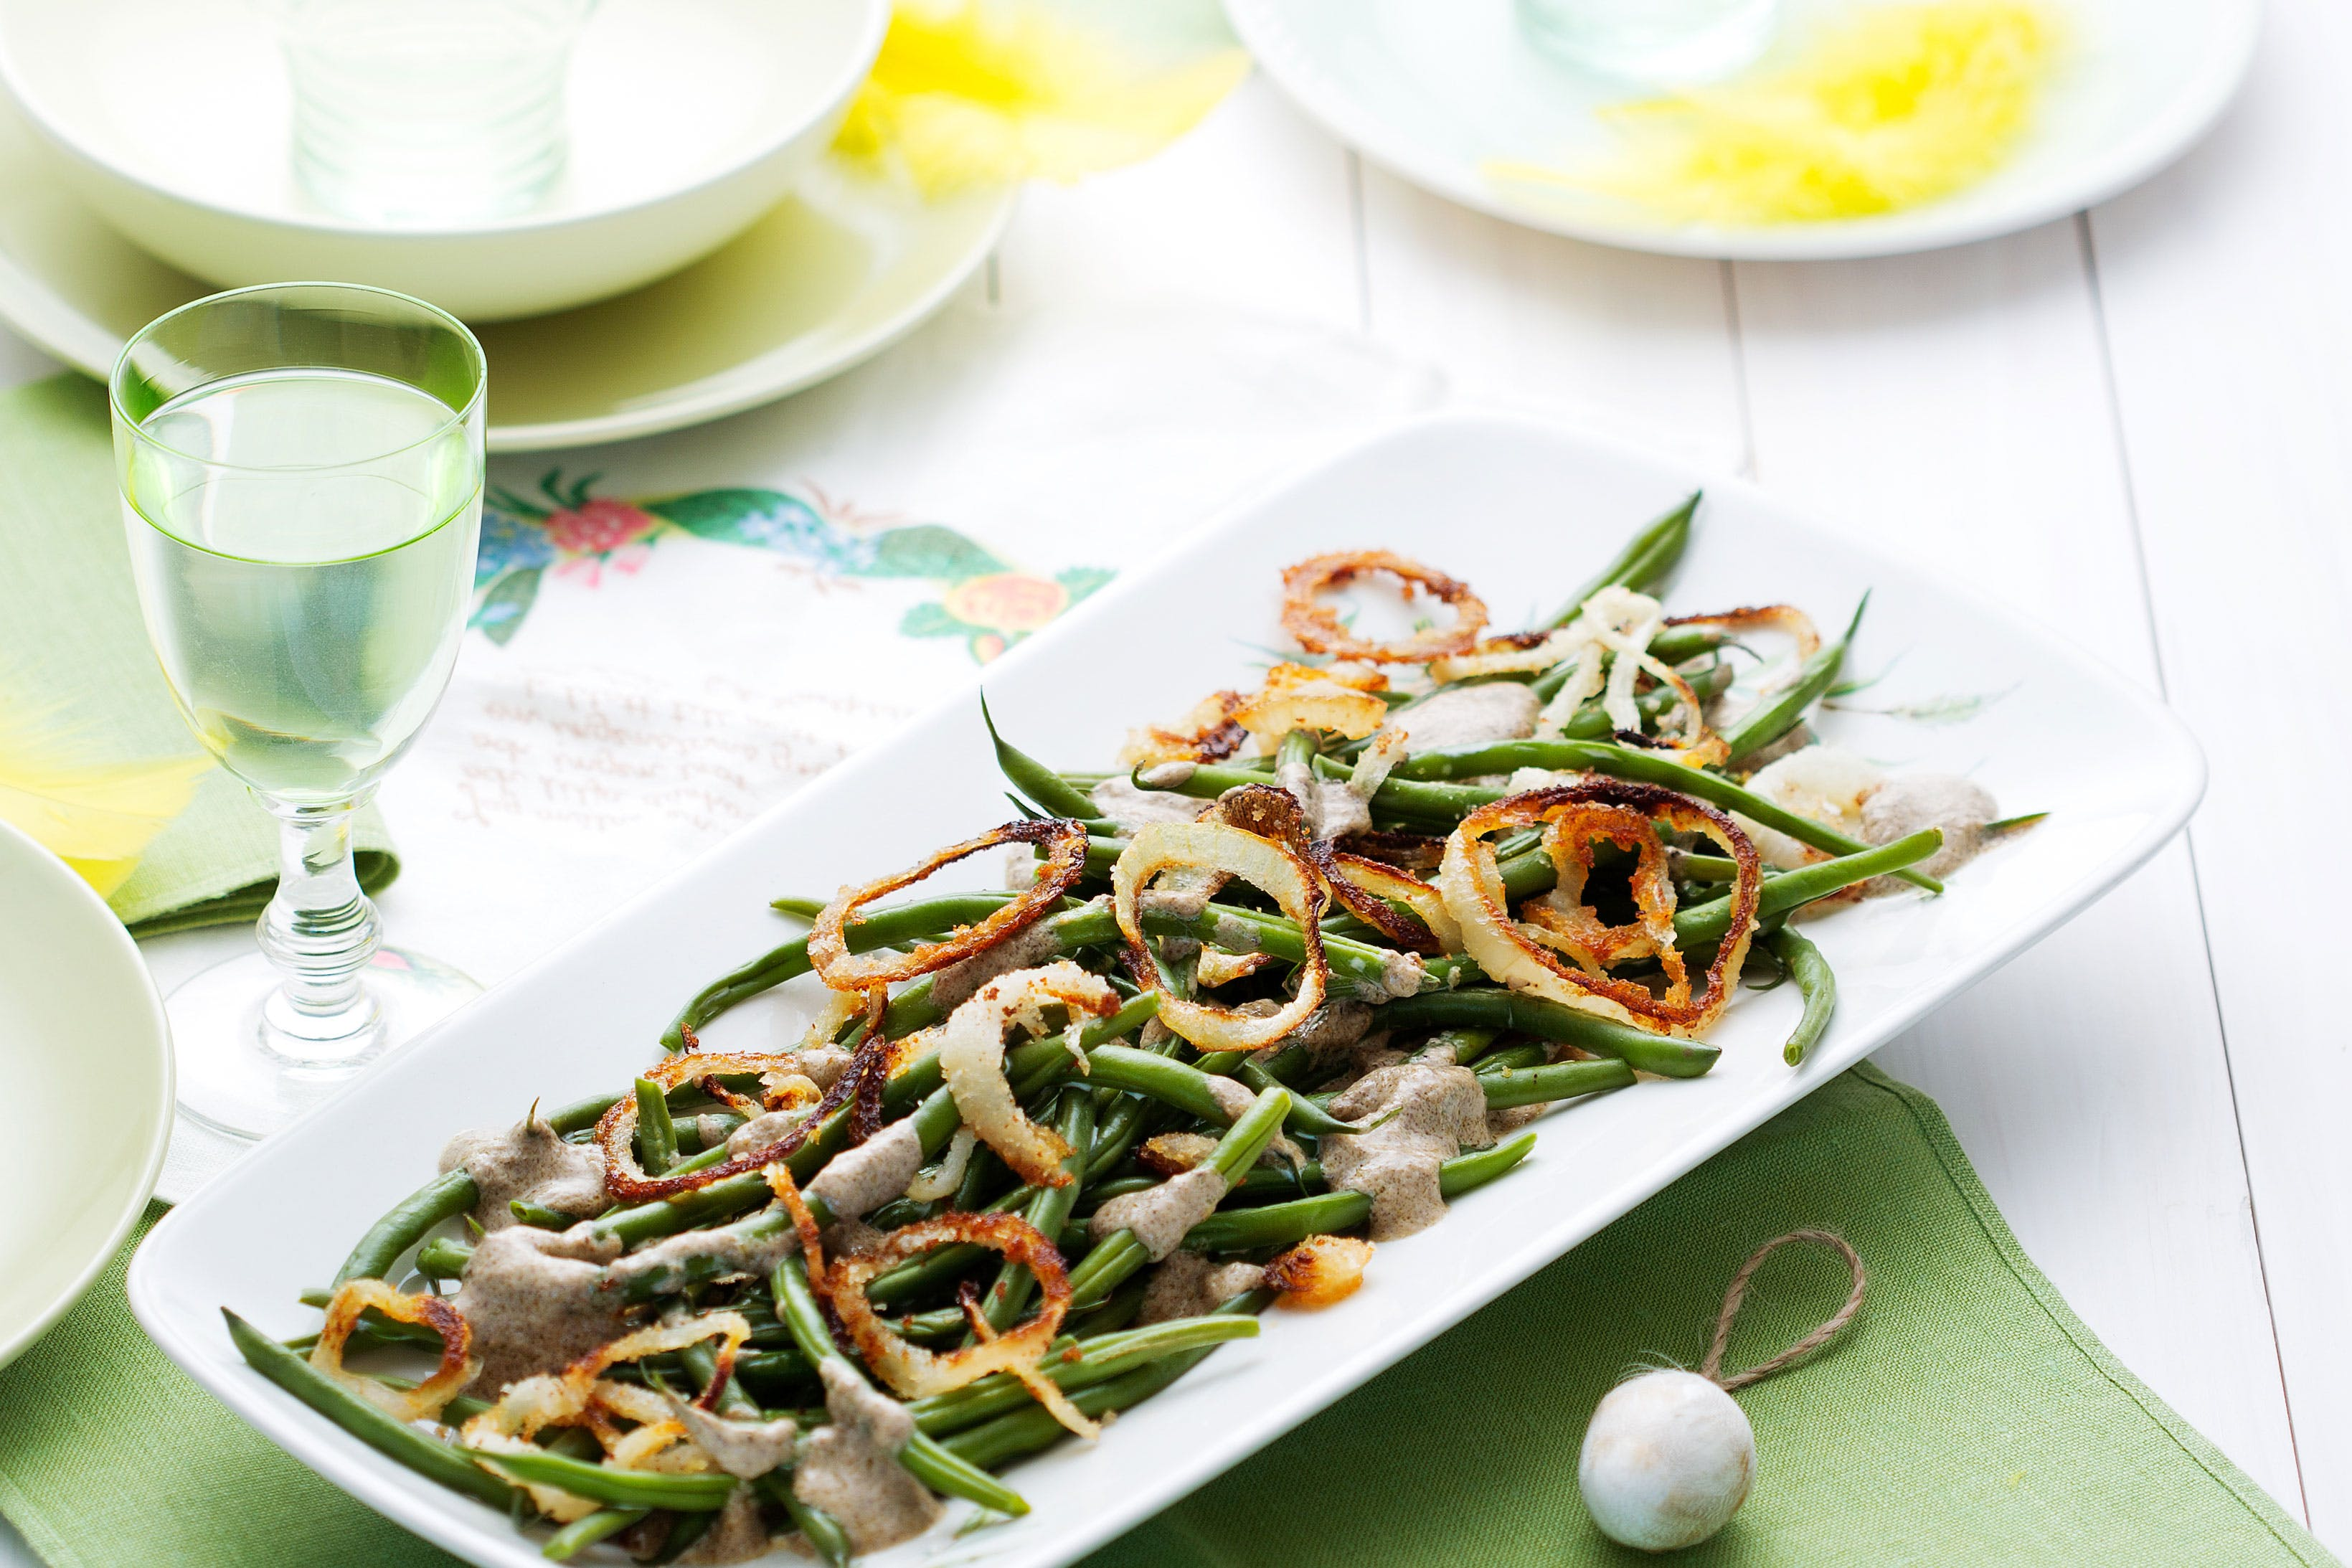 Green beans with roasted onions and cream of mushroom sauce